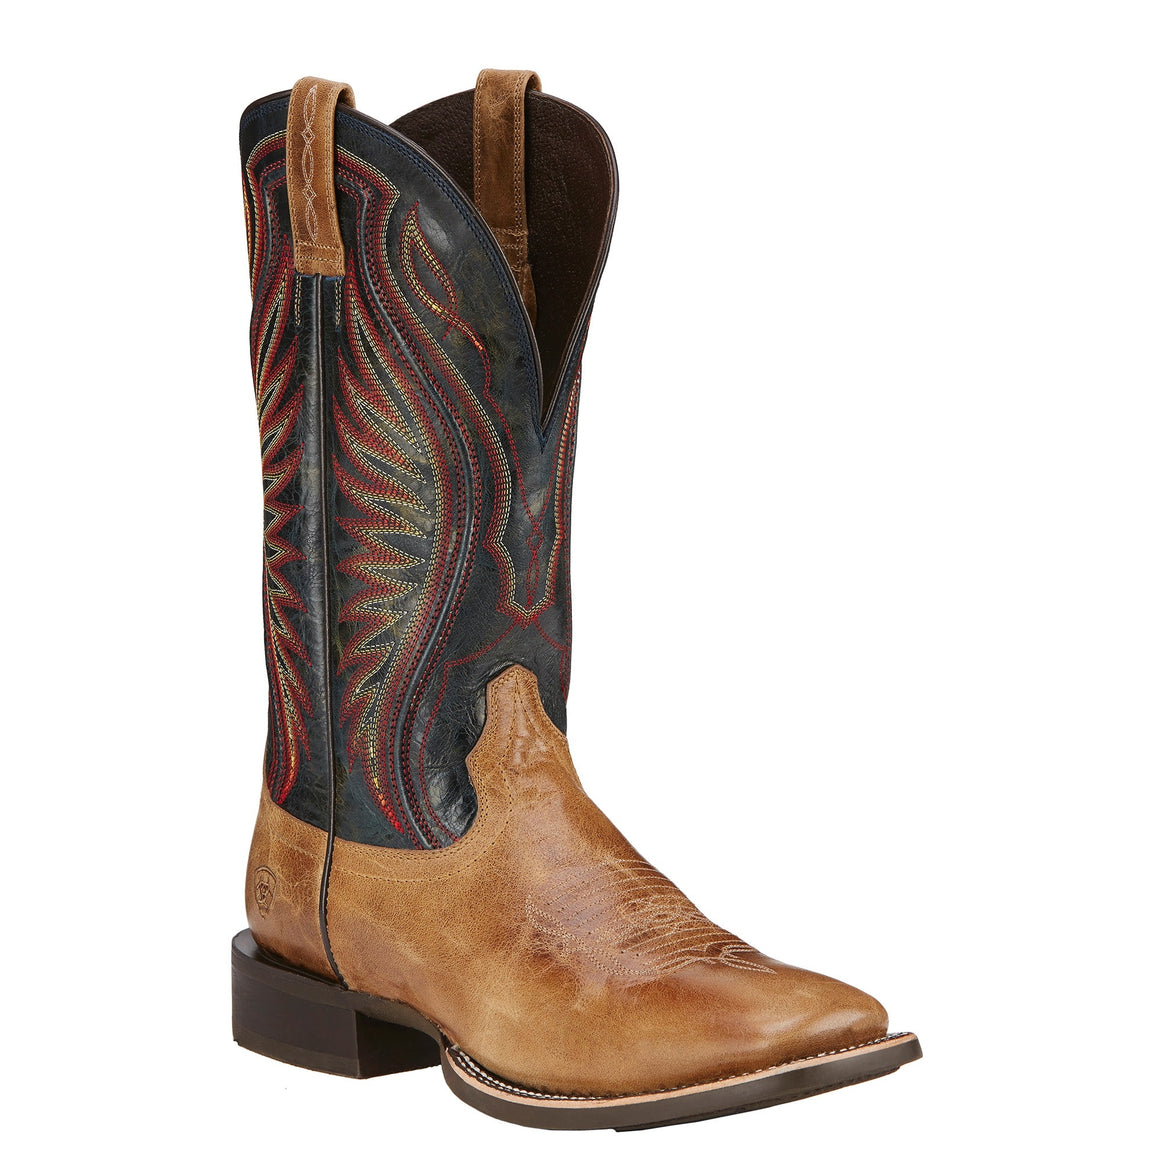 Ariat Rodeo Warrior Square Toe Cowboy Boots - Kerlin's Western and Work Wear